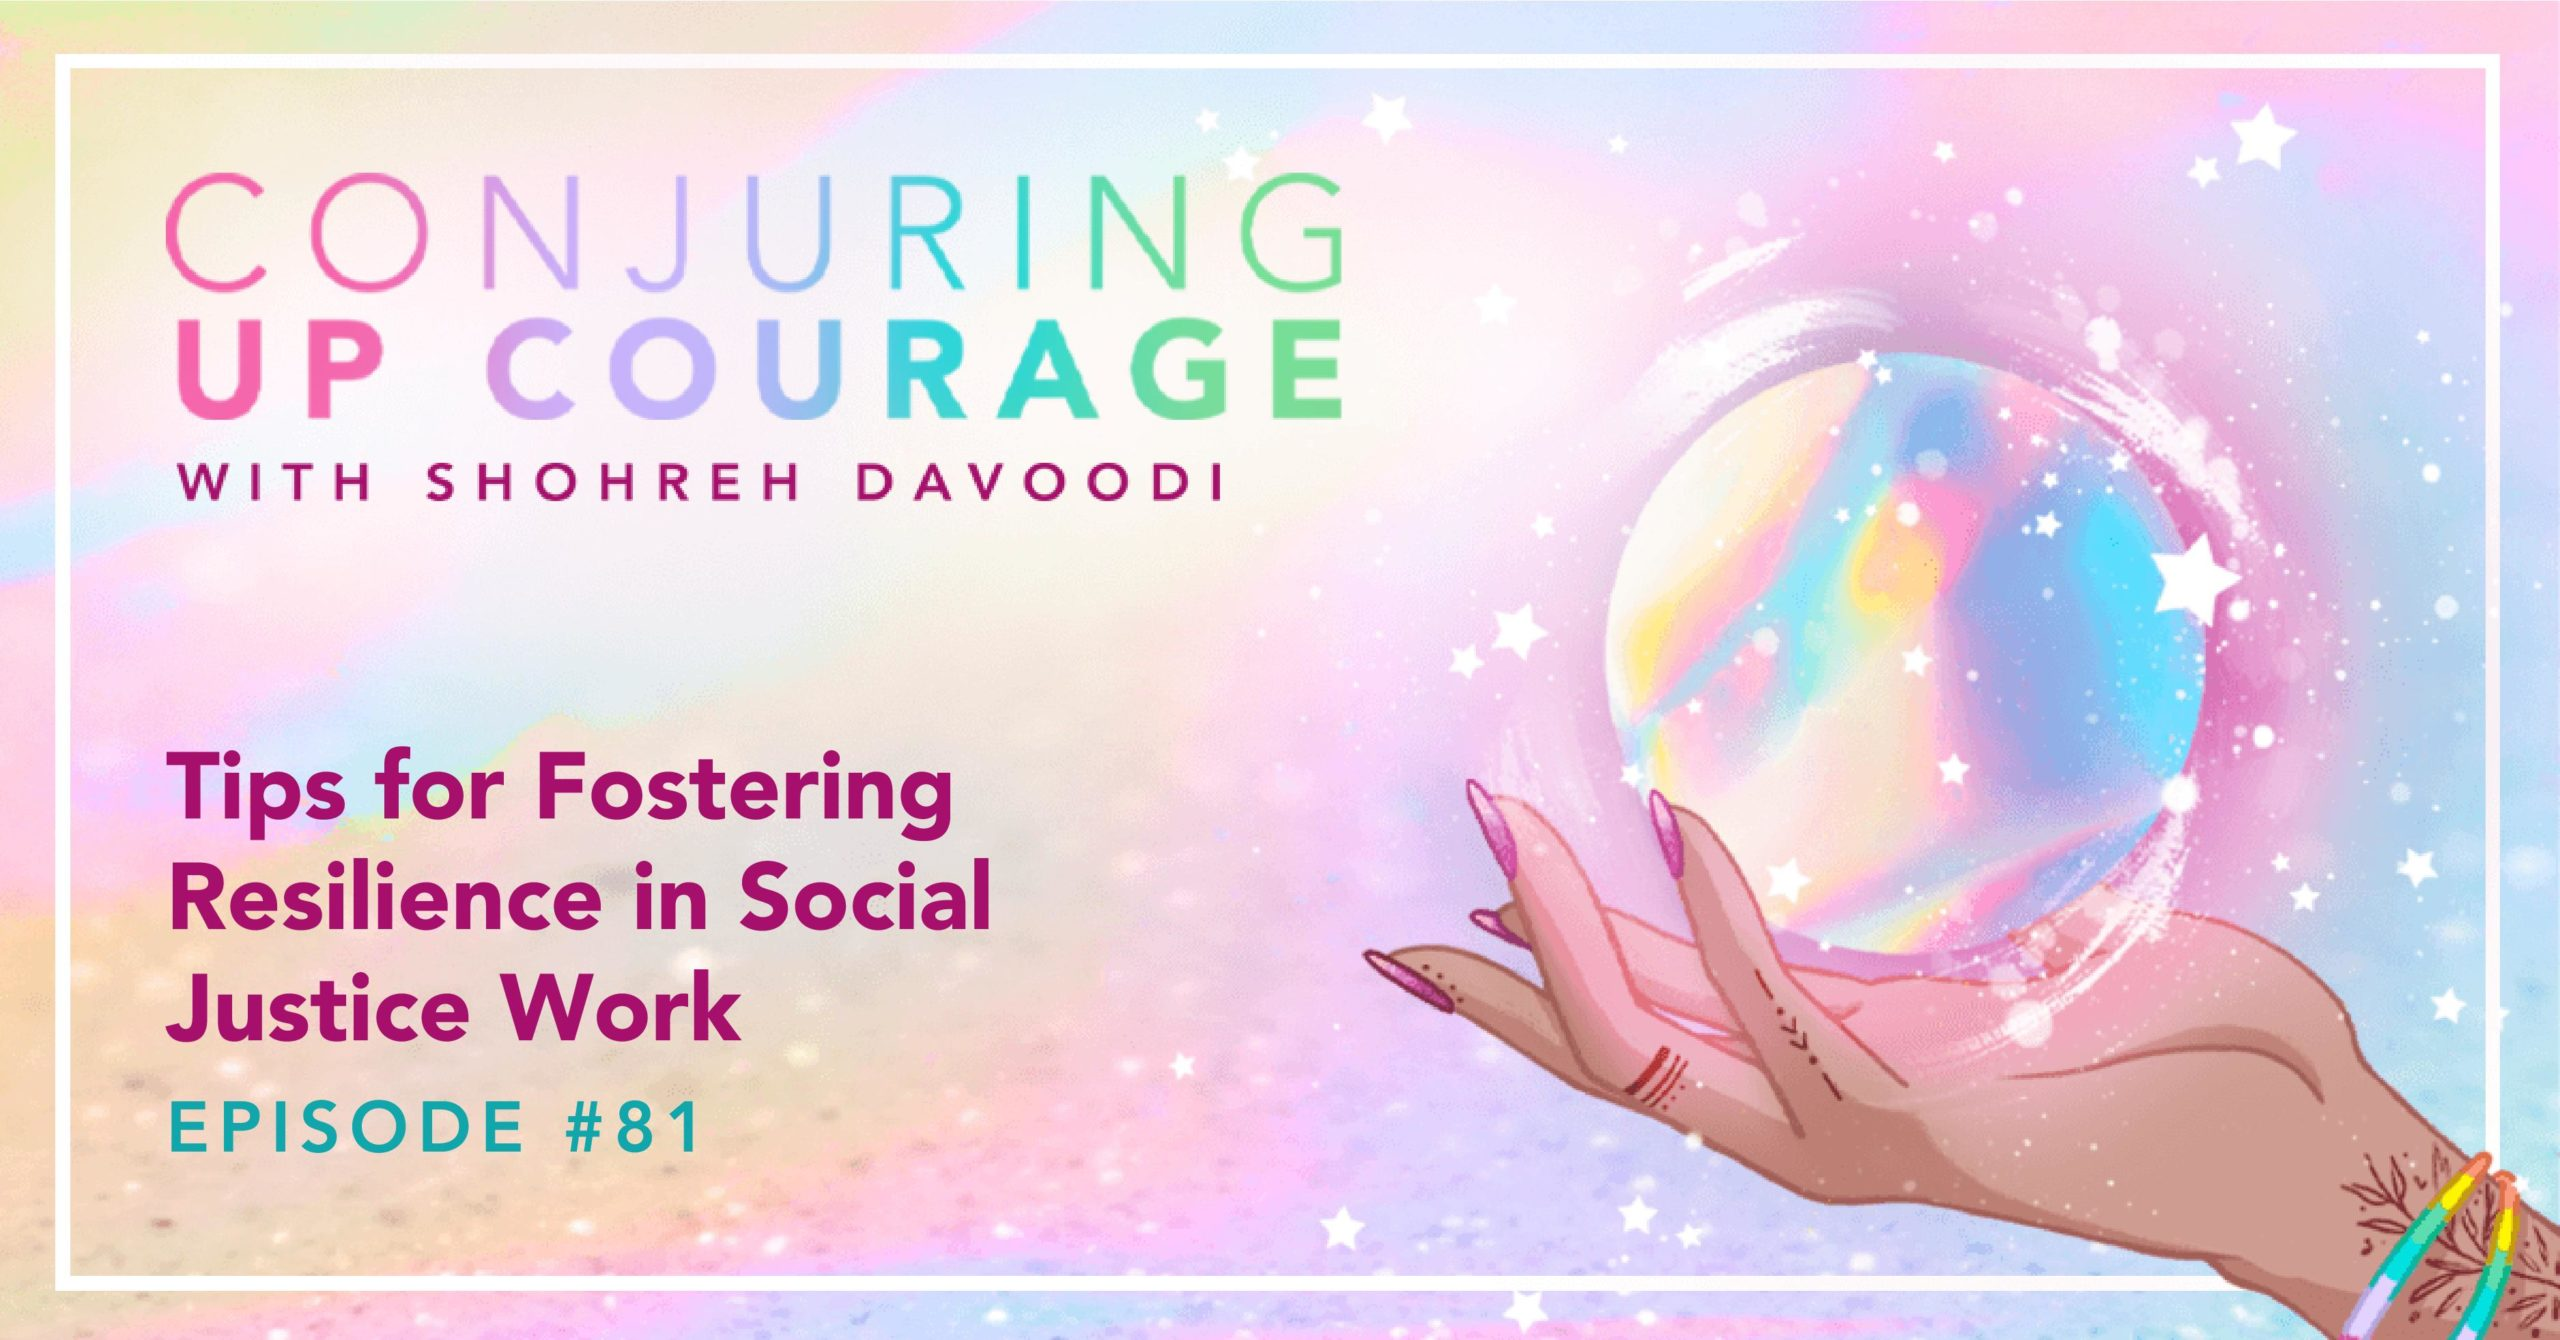 """The Conjuring Up Courage logo, a hand holding a rainbow pastel crystal ball, and the words, """"Tips for Fostering Resilience in Social Justice Work Episode #81"""""""